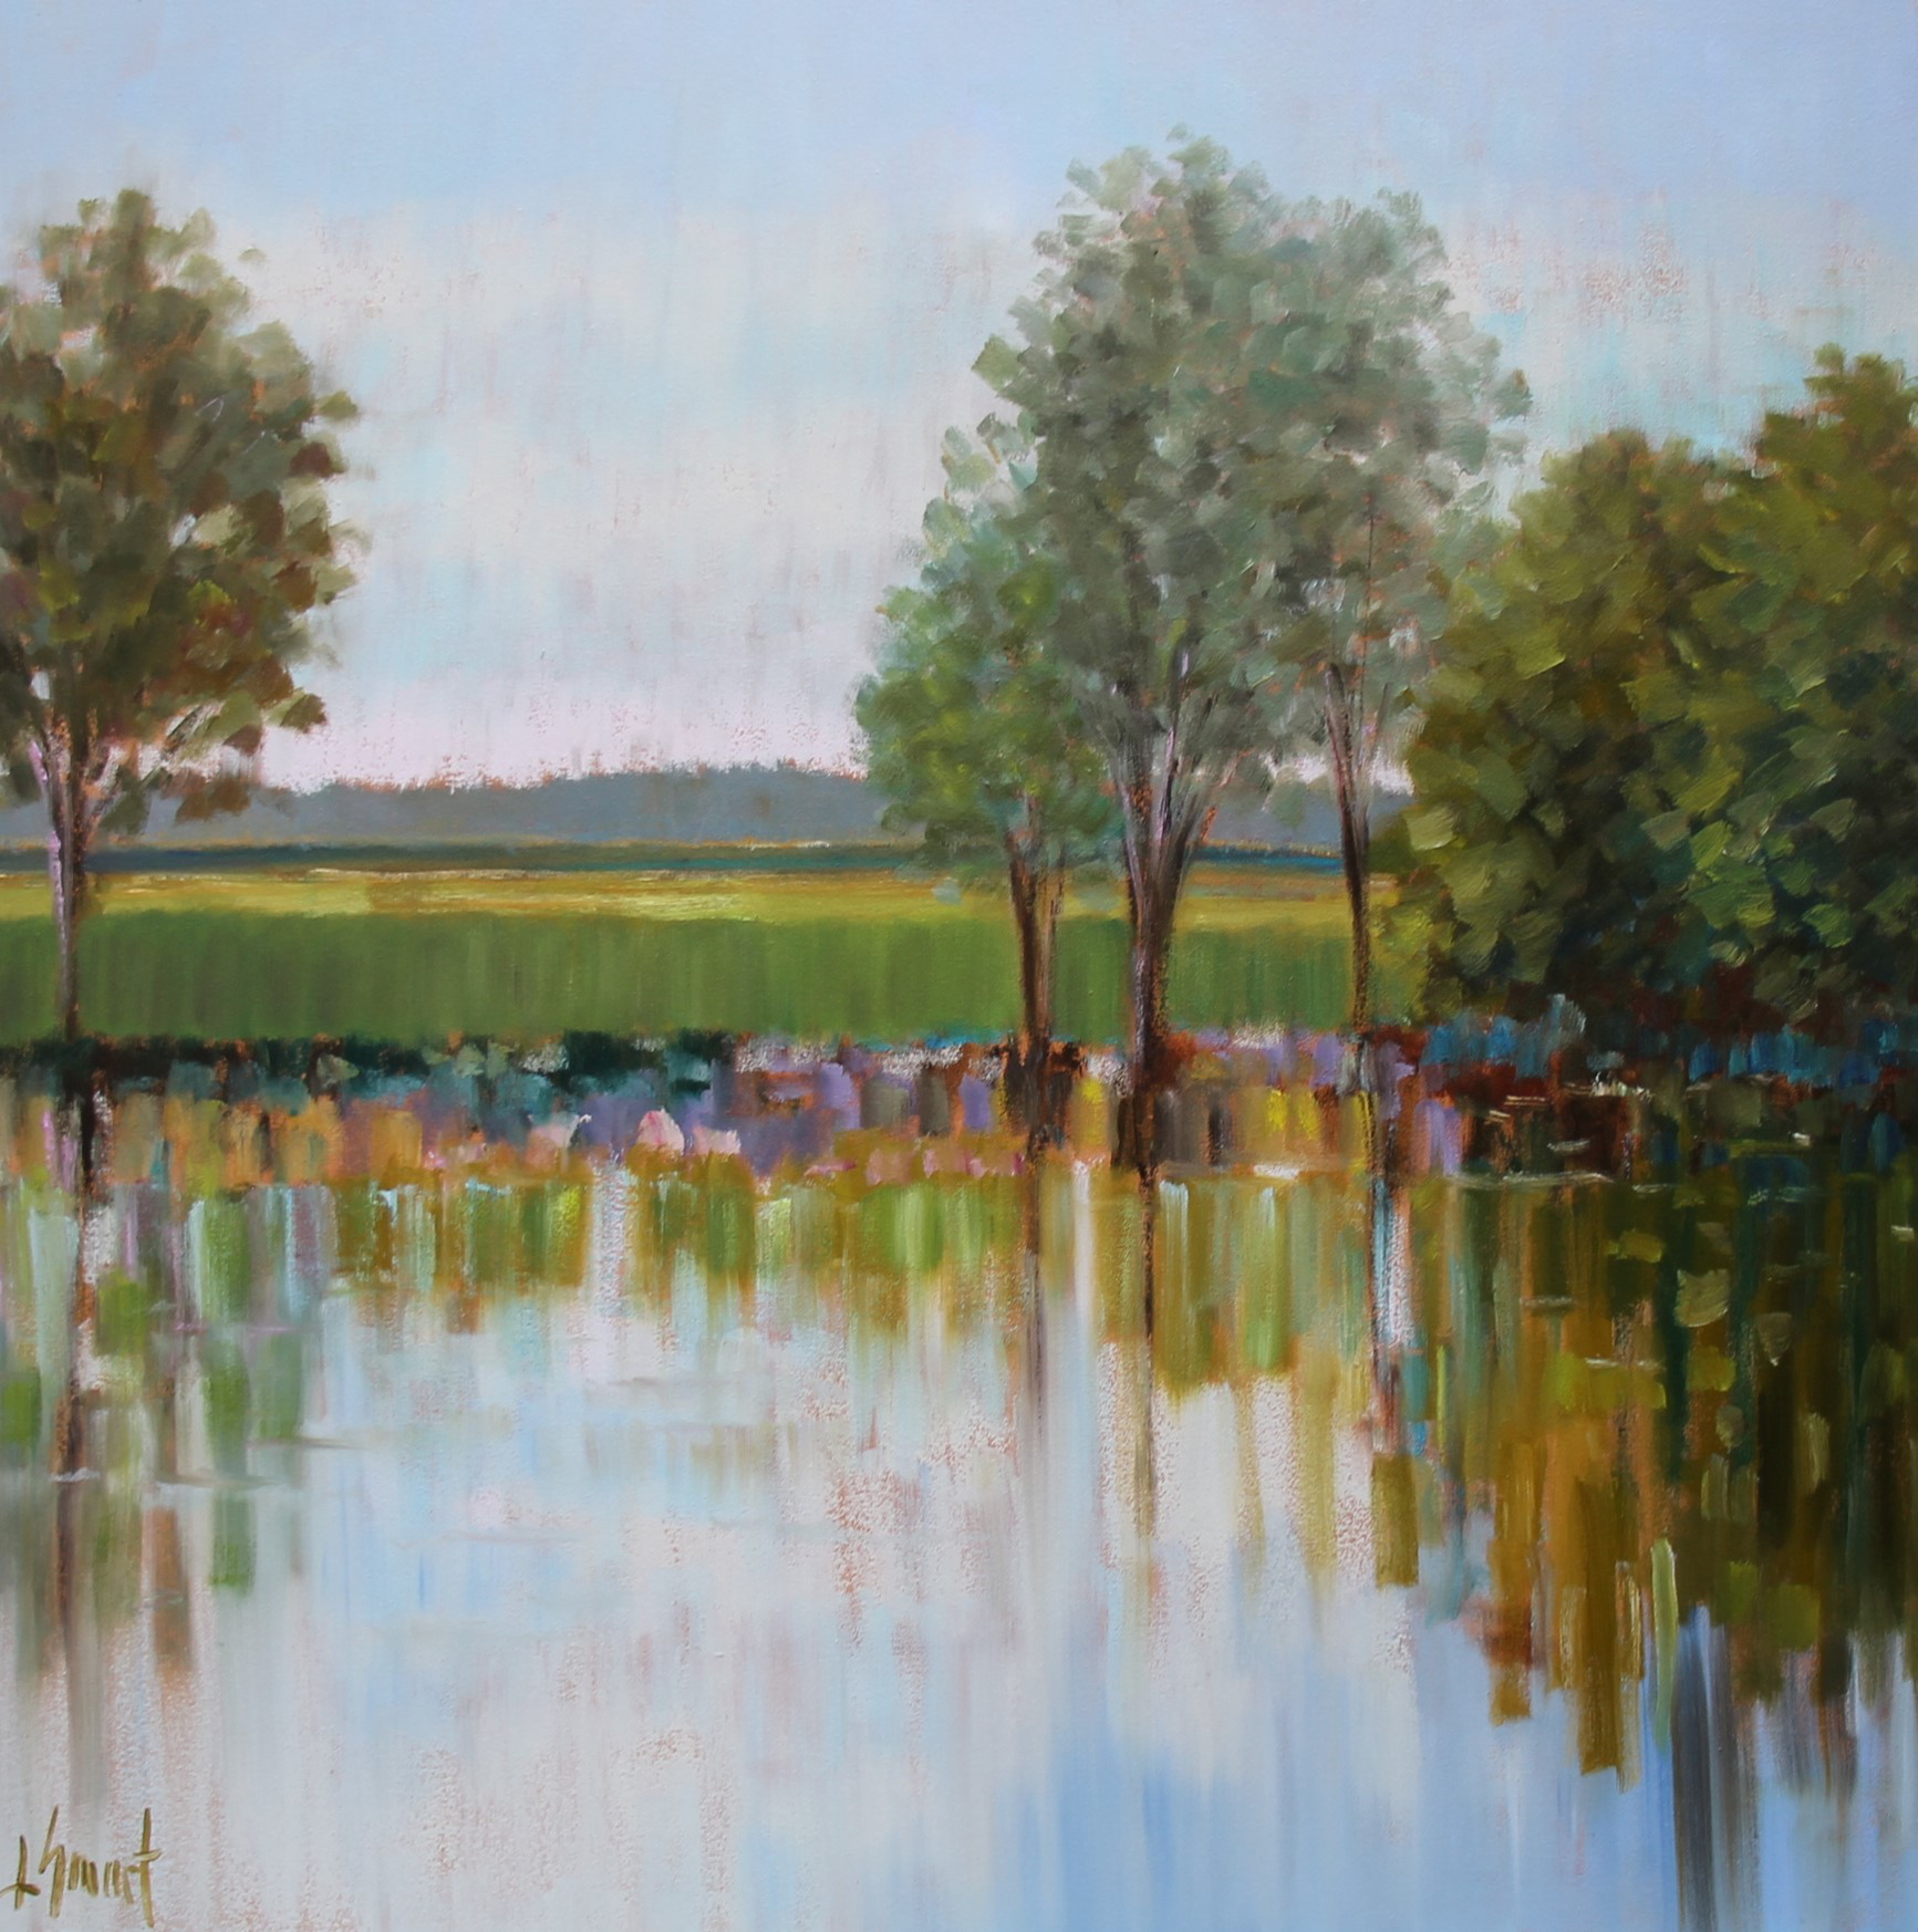 Along the Riverbank by Libby Smart